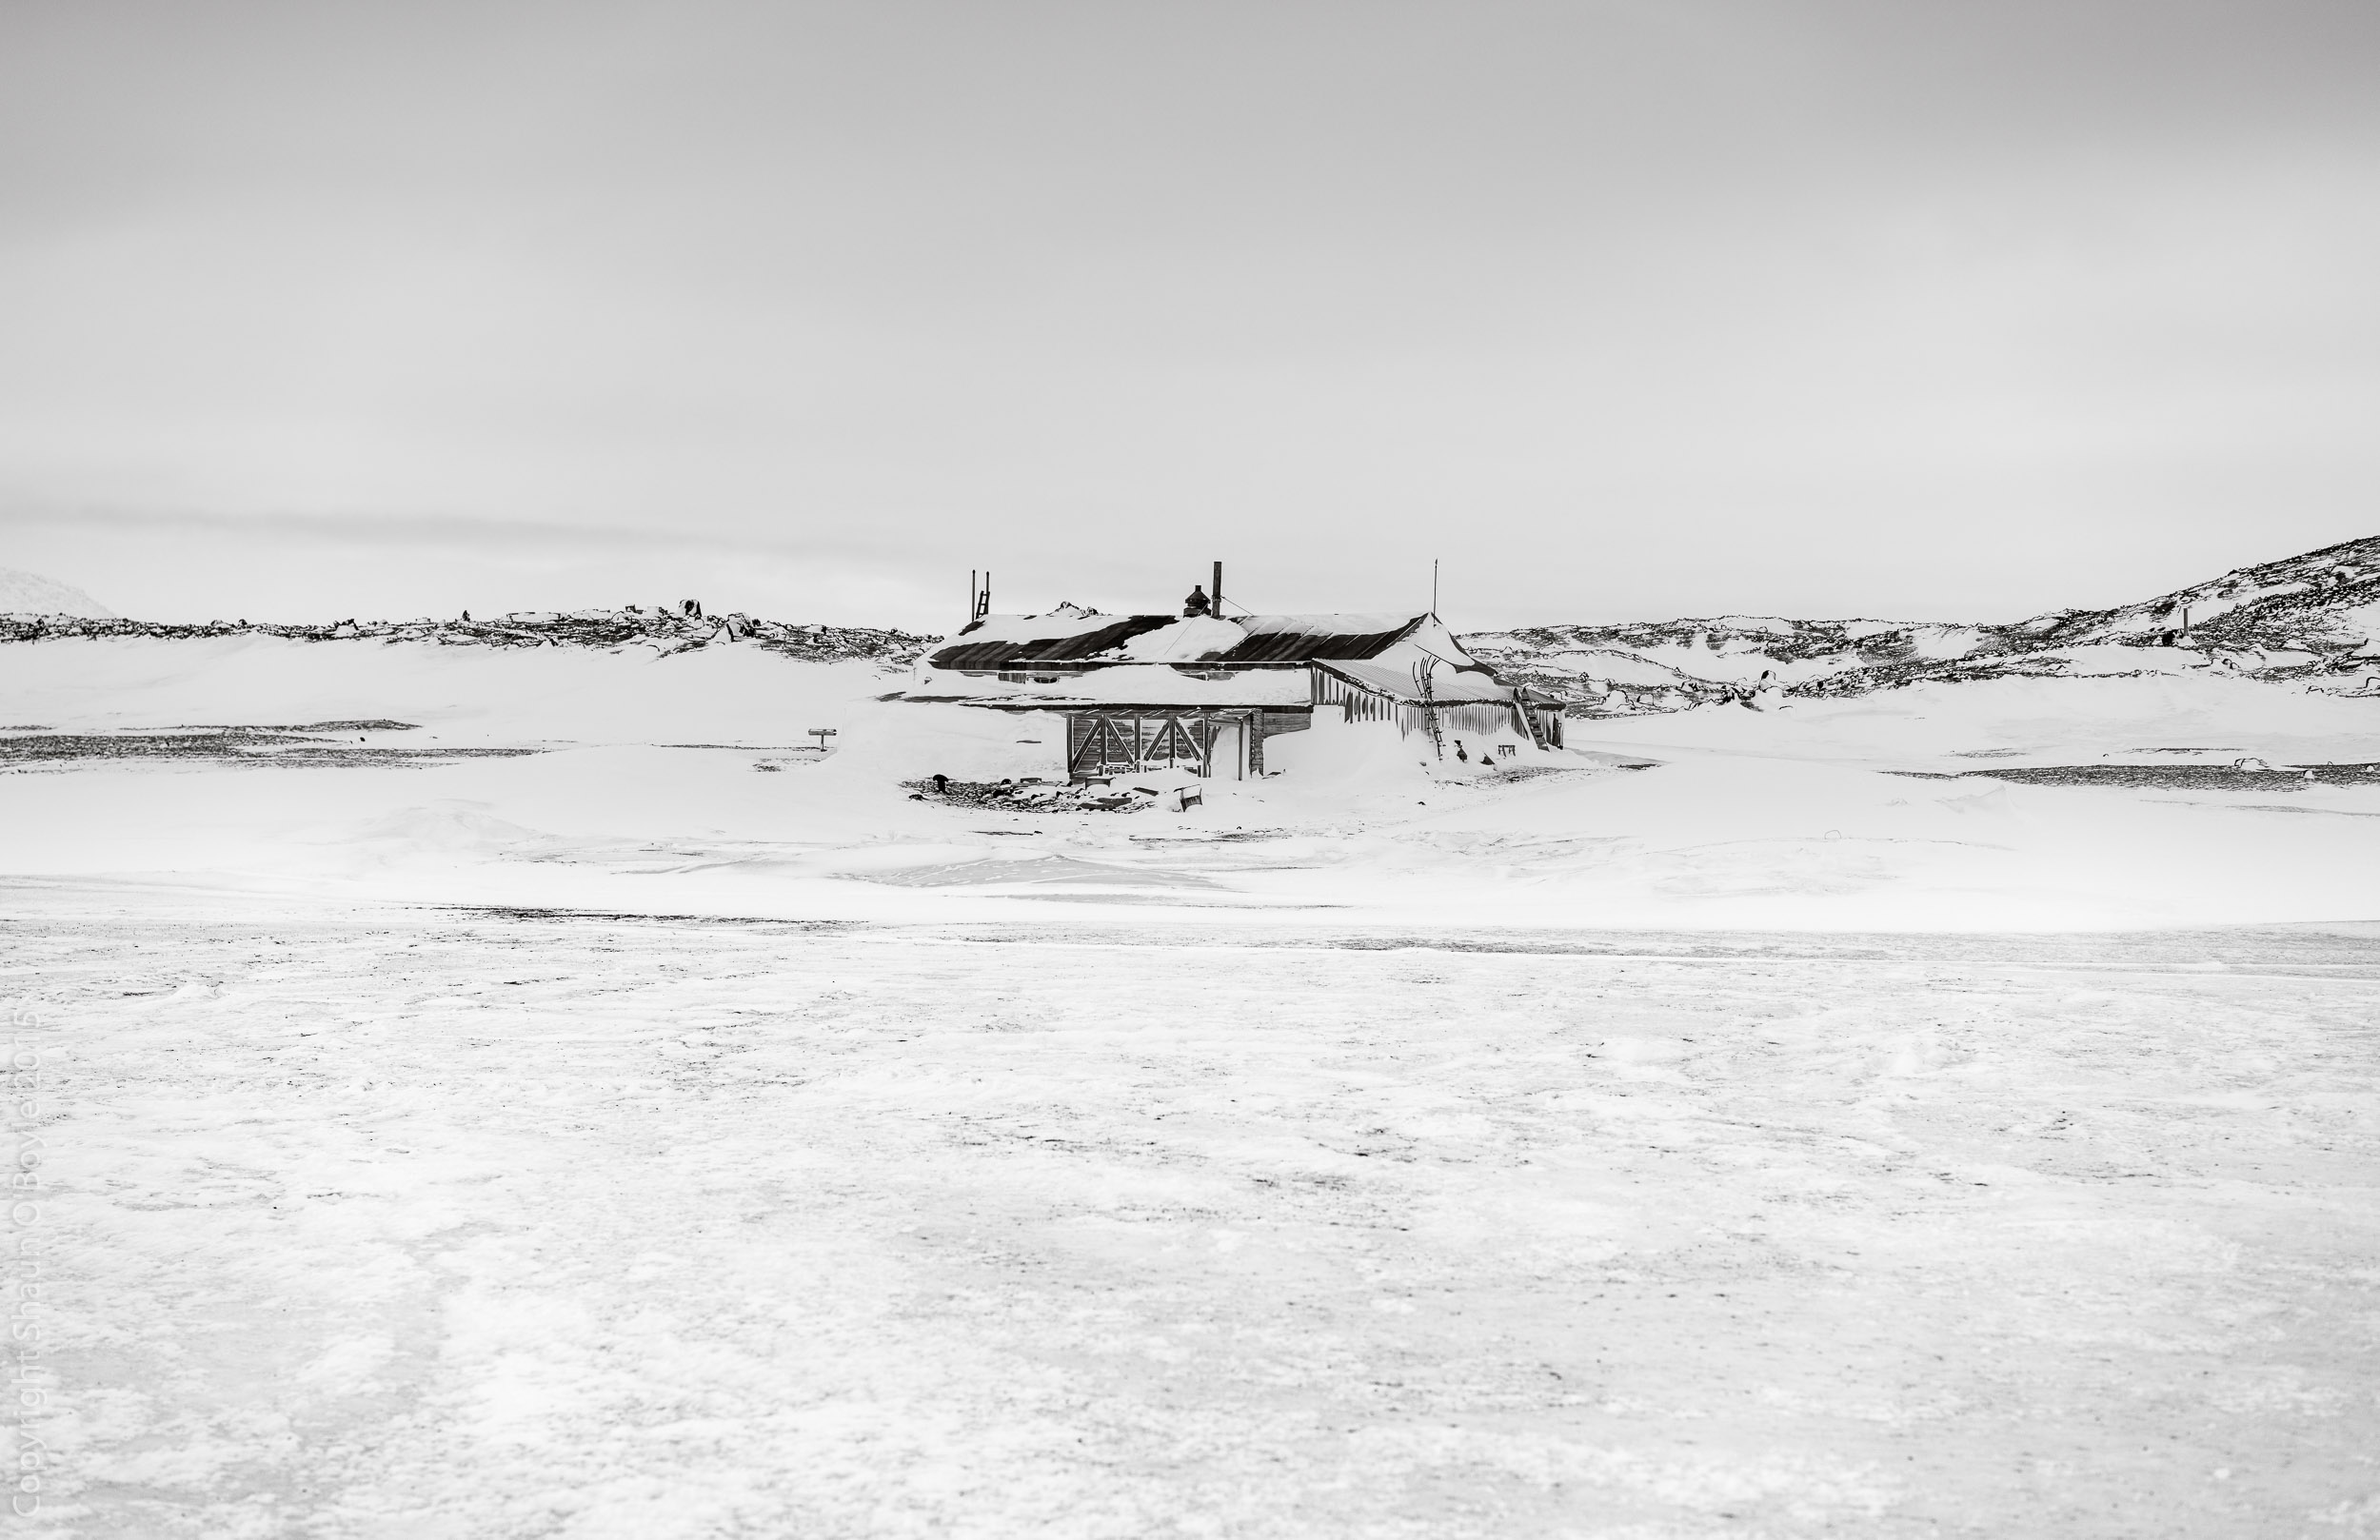 Cape Evans Hut, built by Captain Scott in 1911 for the Terra Nova Expedition, from the Sea Ice on arrival.